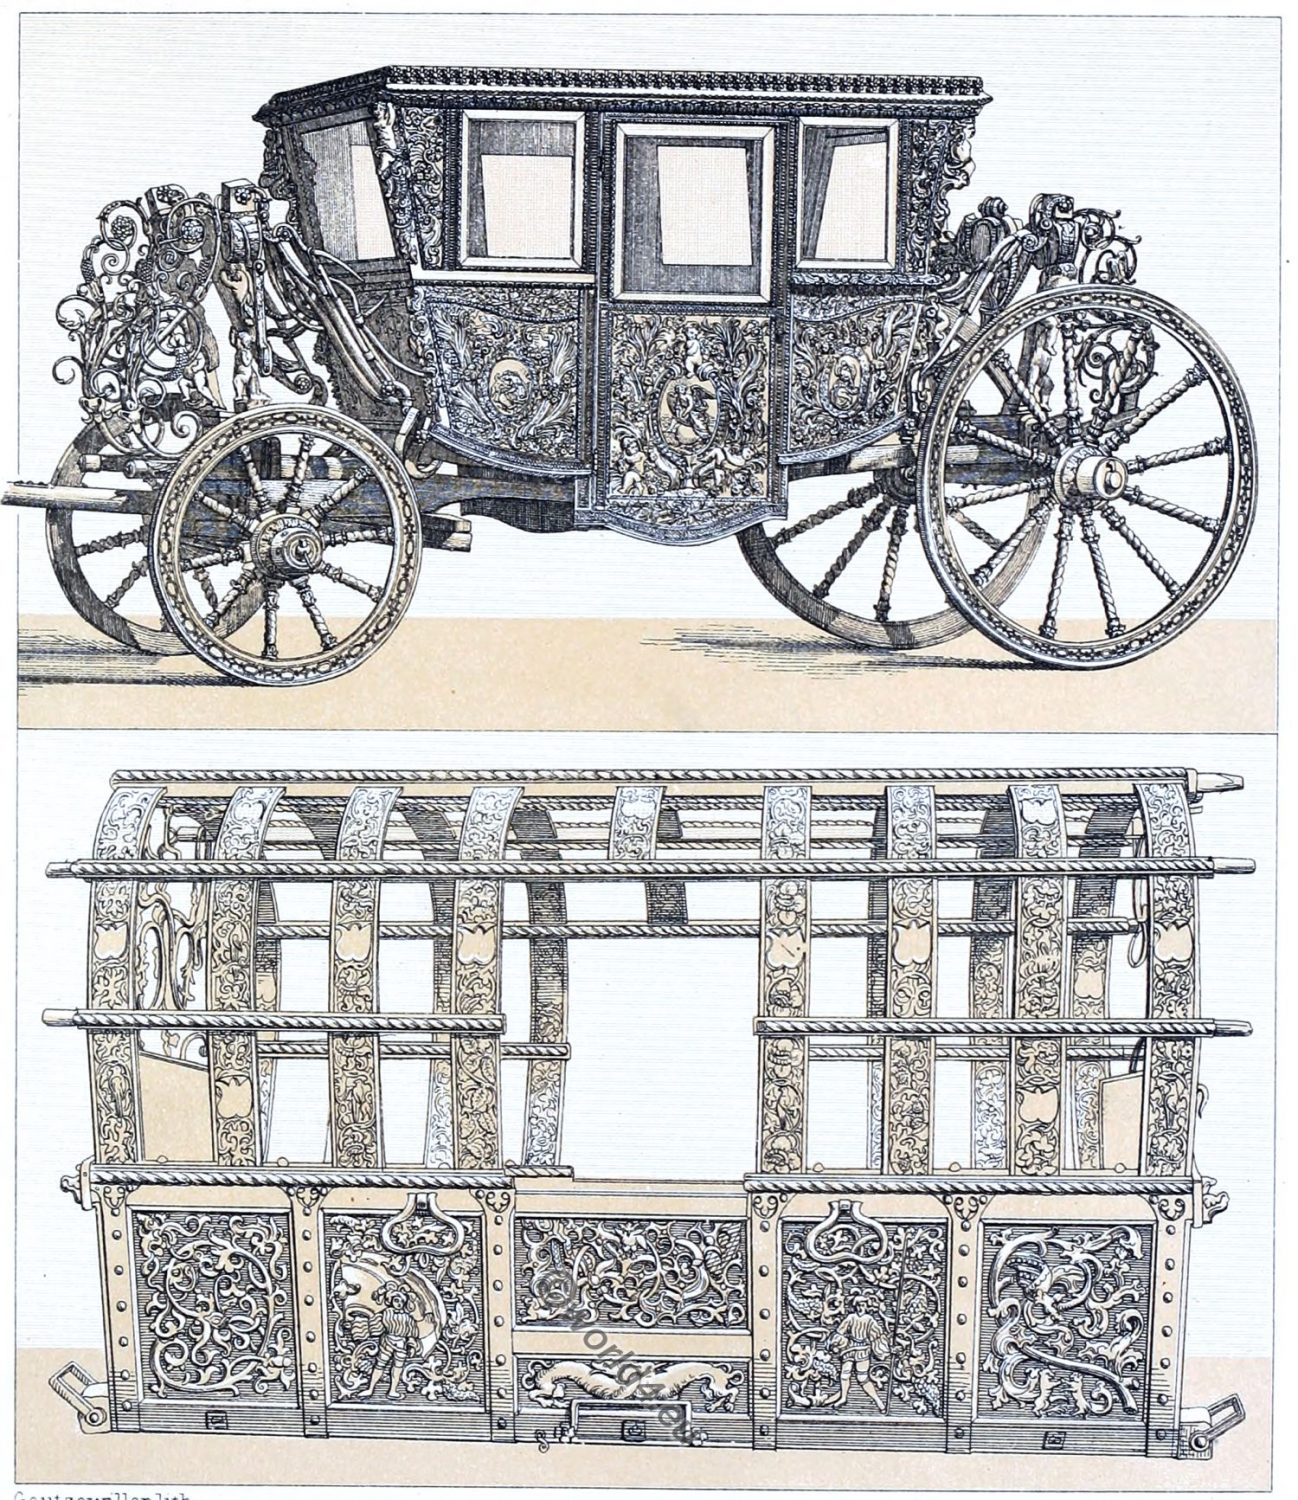 Carosses, carriages, coaches, Baroque, Transportation,